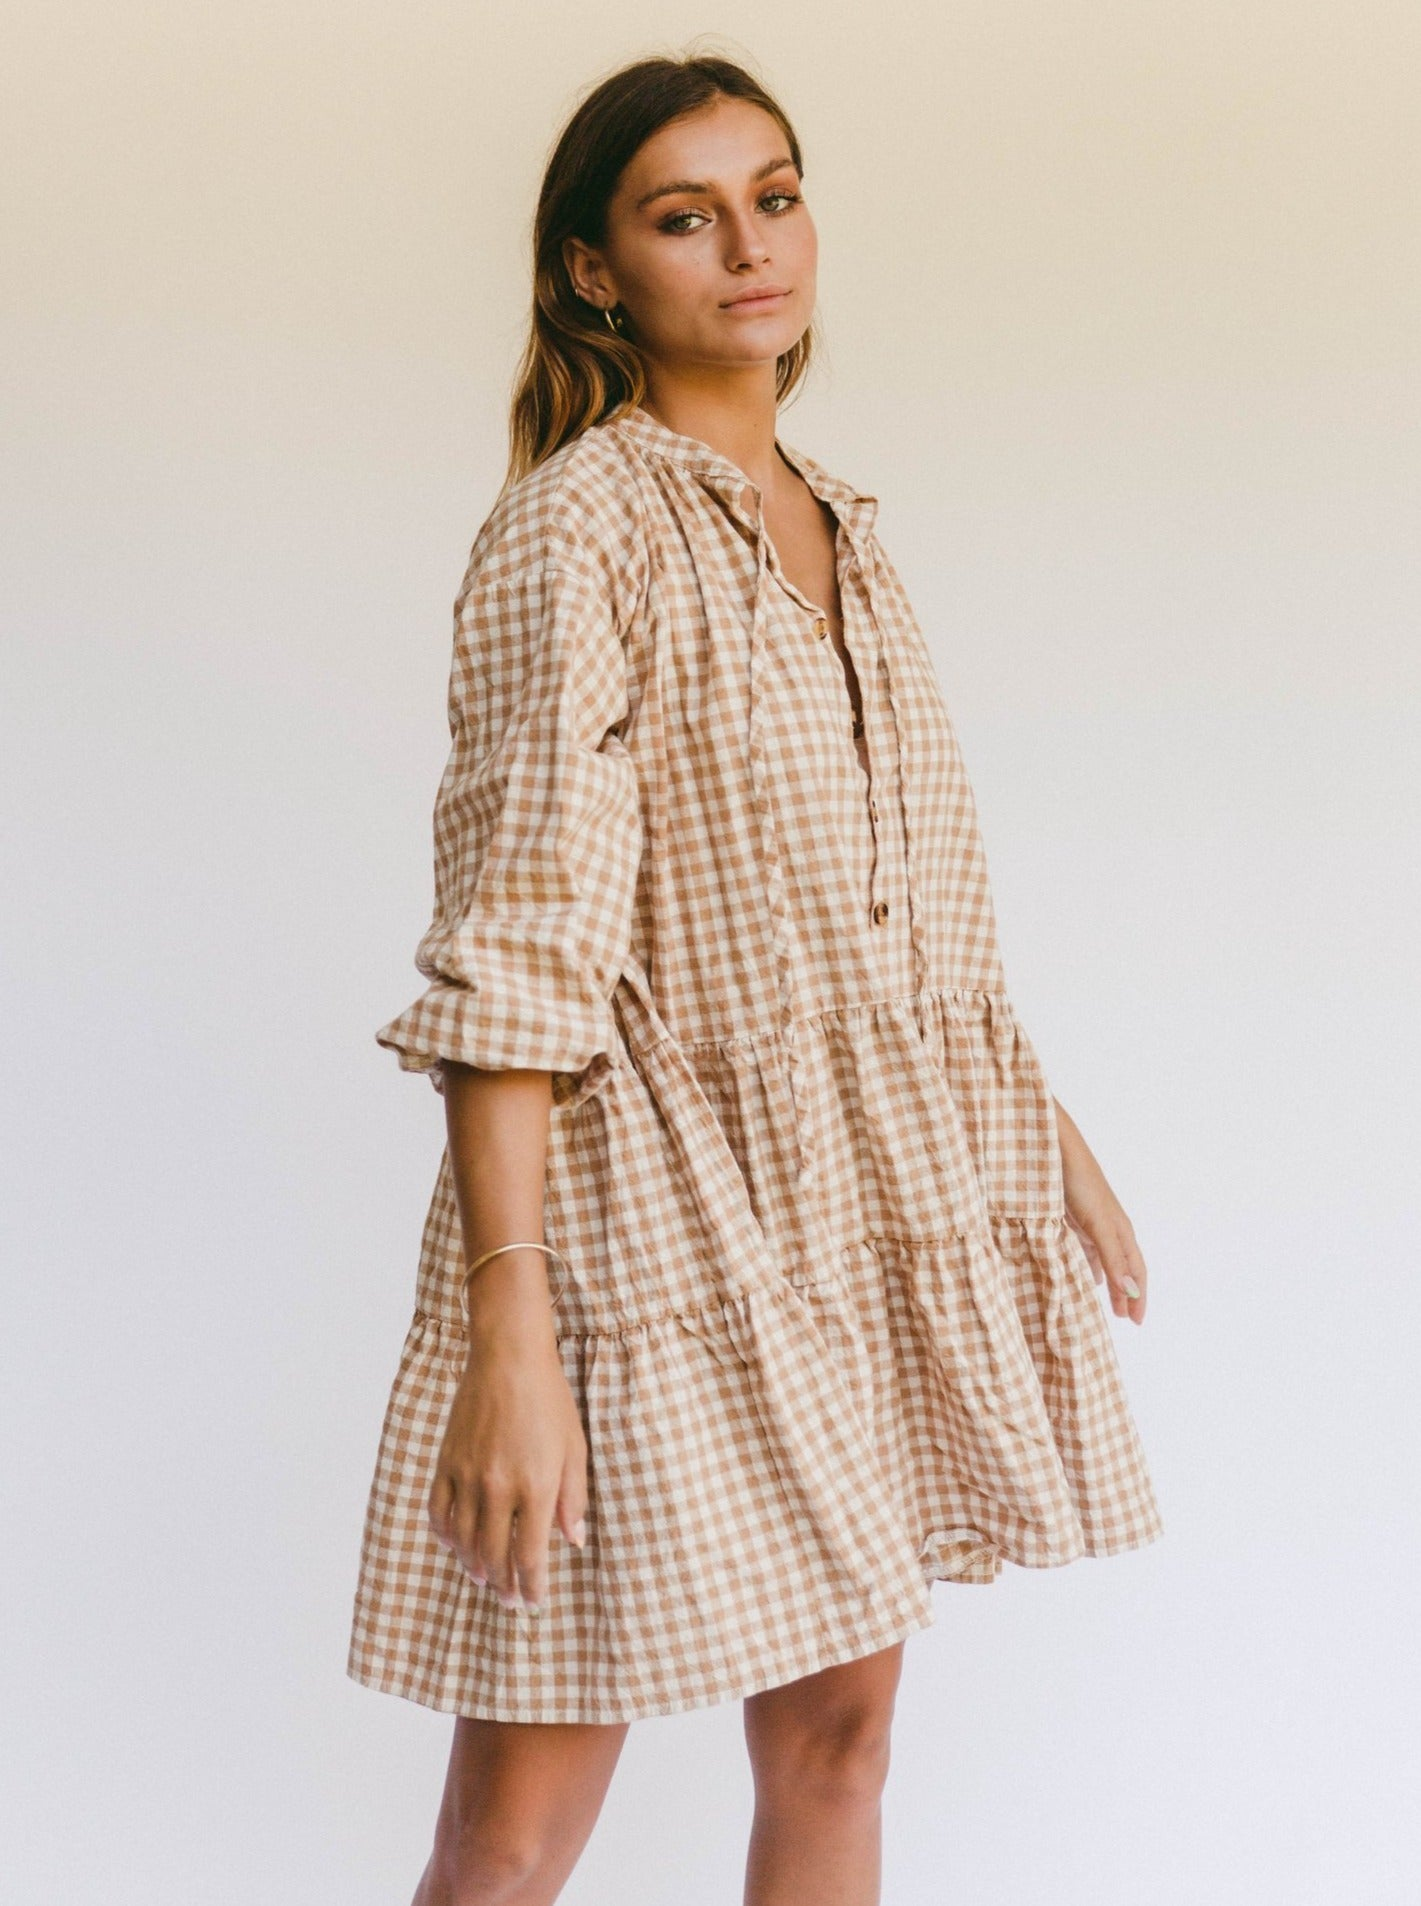 PREORDER The Lullaby Club Avalon Smock Dress in Caramel Gingham